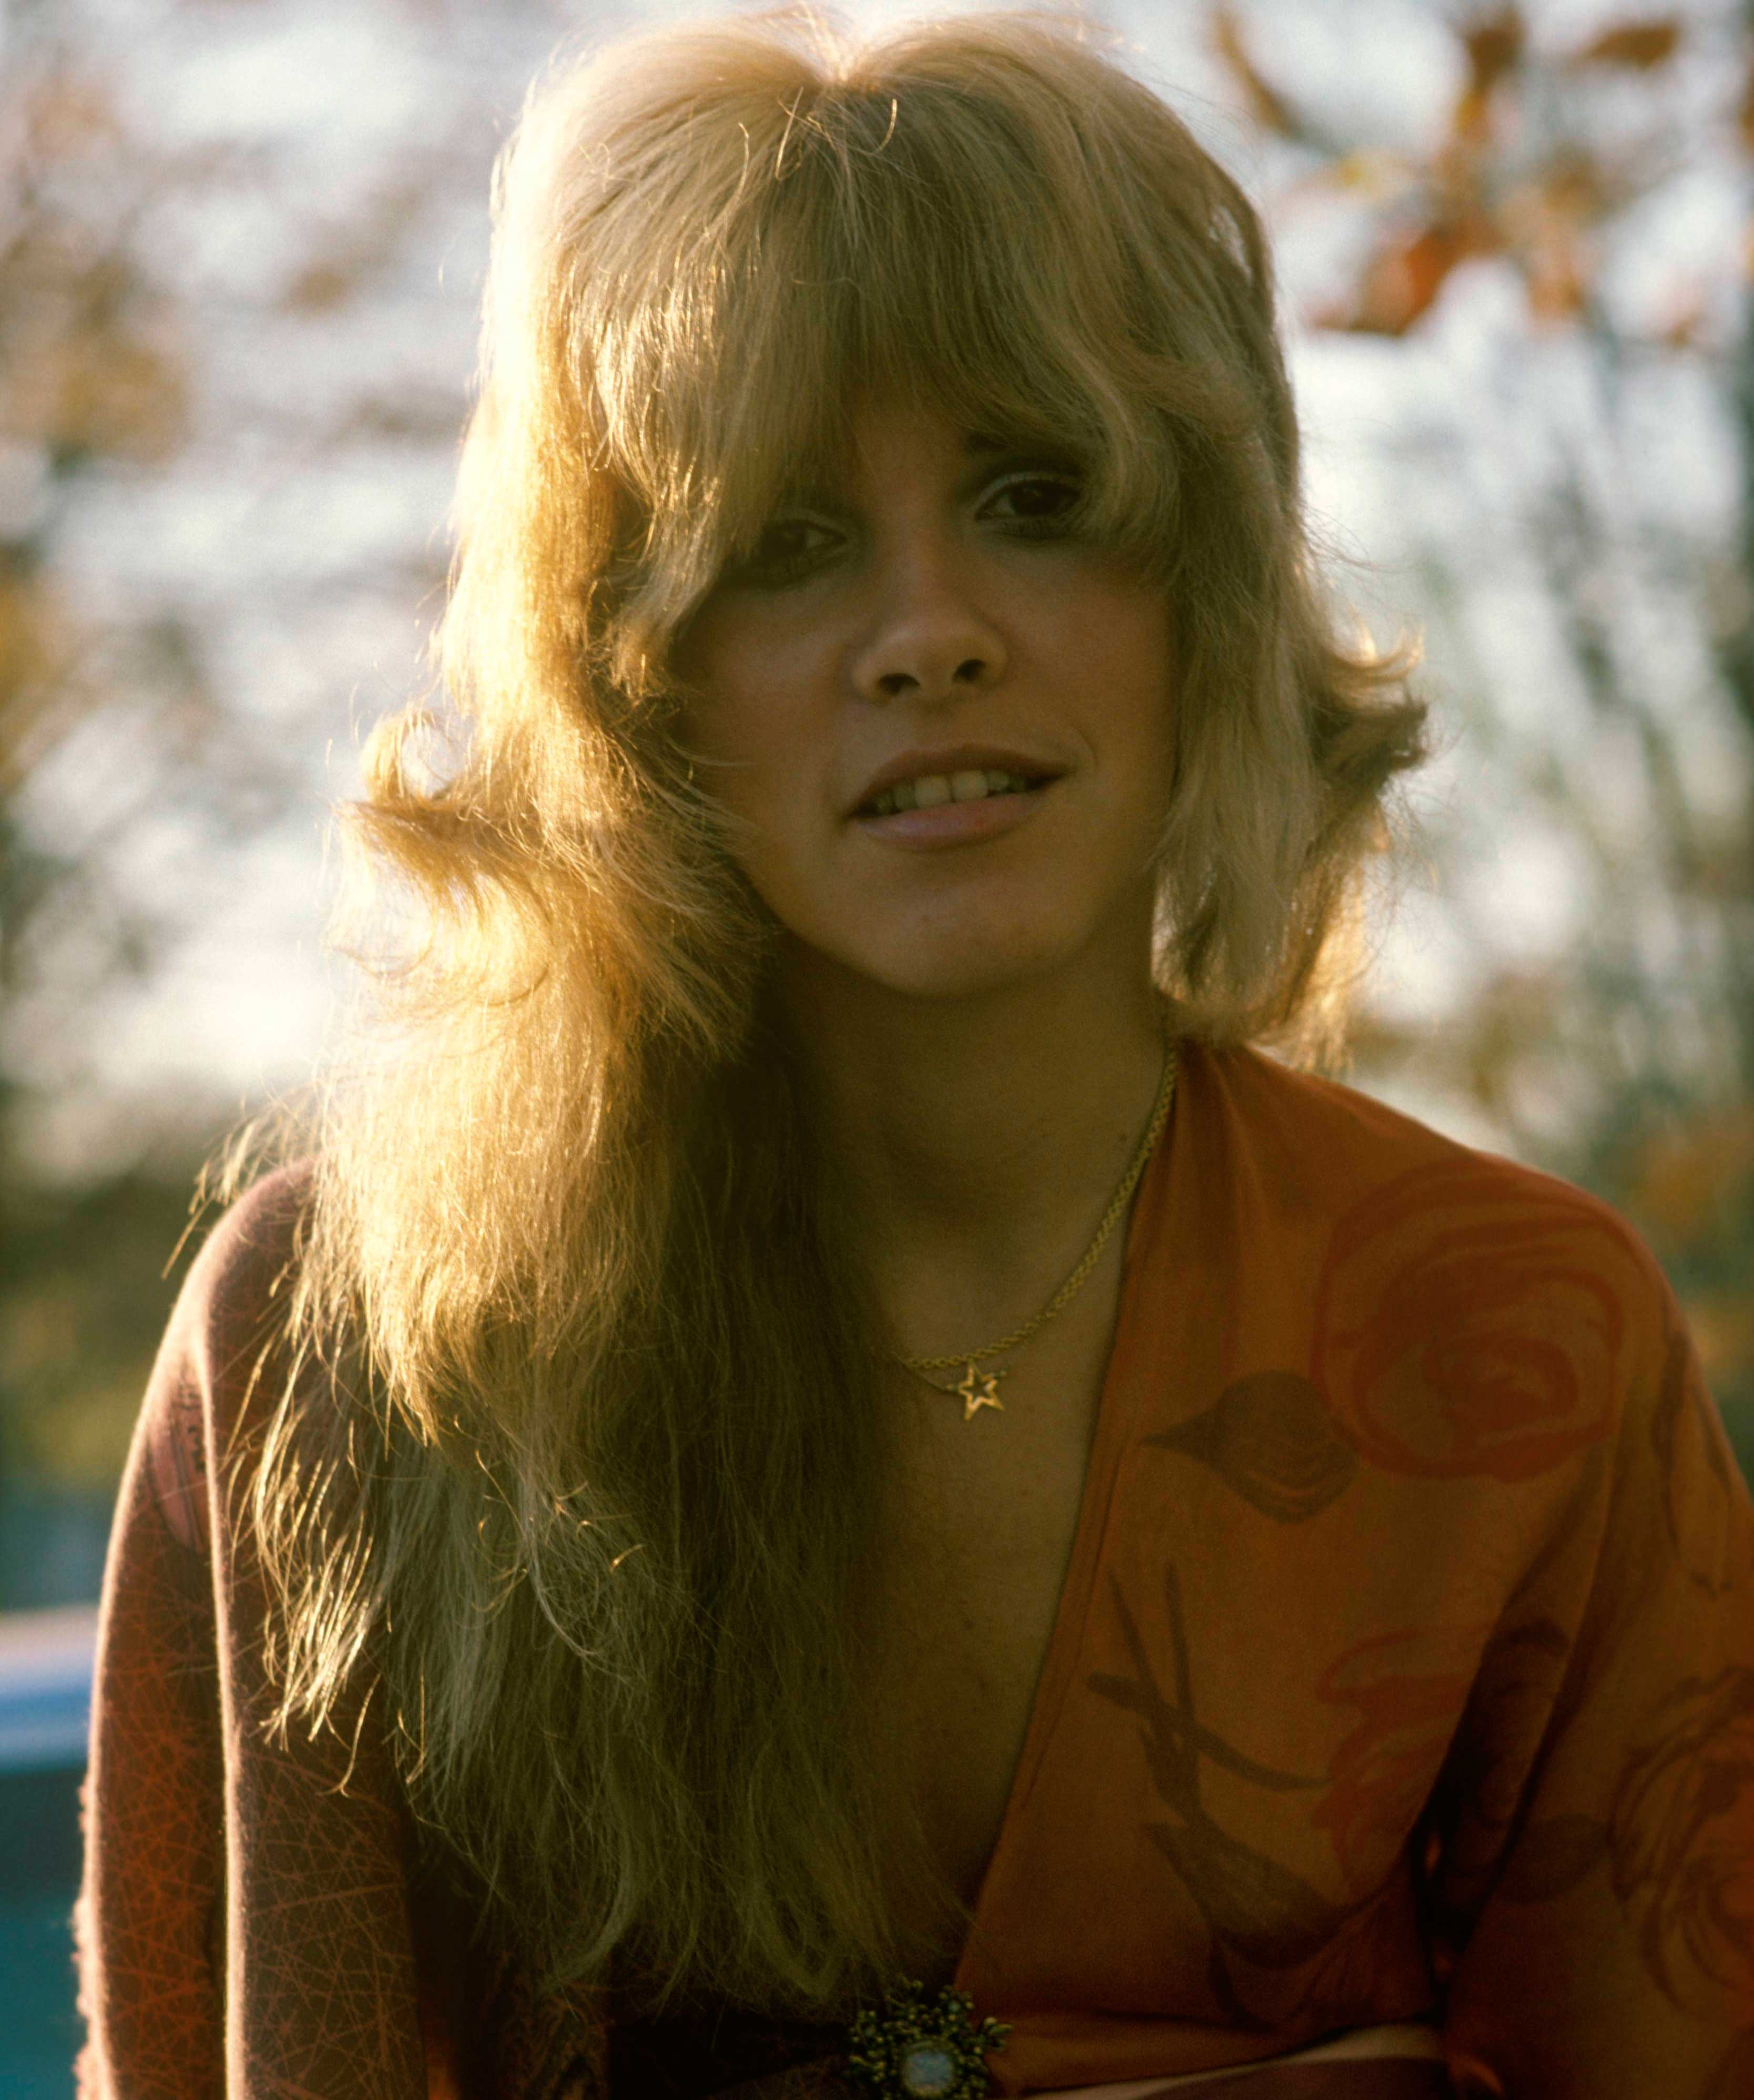 The eyeshadow trick to steal from Stevie Nicks